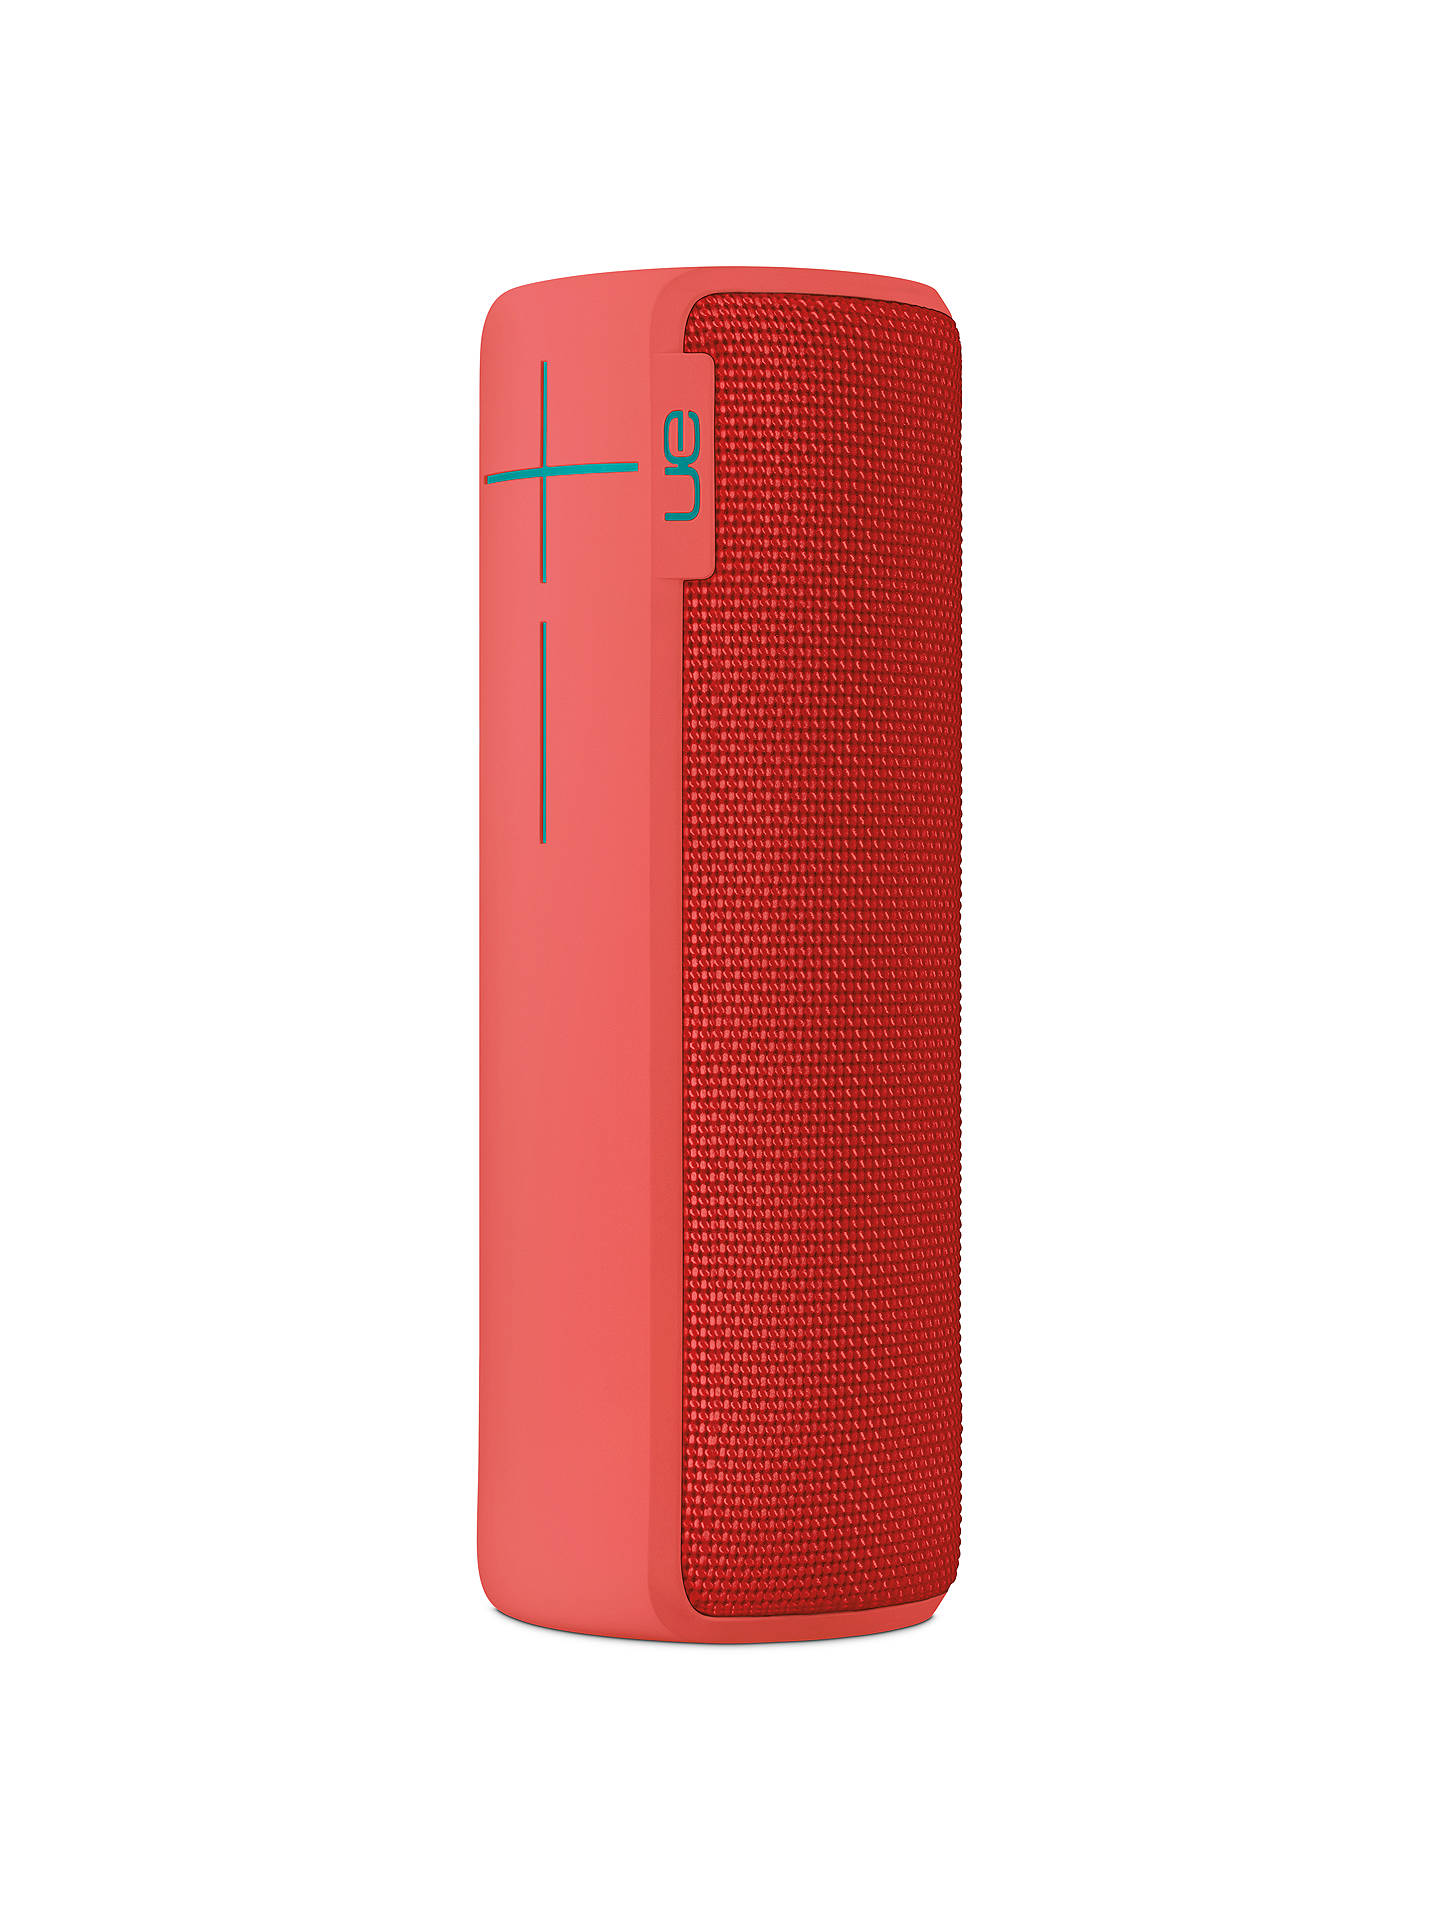 BuyUltimate Ears BOOM 2 Bluetooth Waterproof Portable Speaker, Cherrybomb Online at johnlewis.com